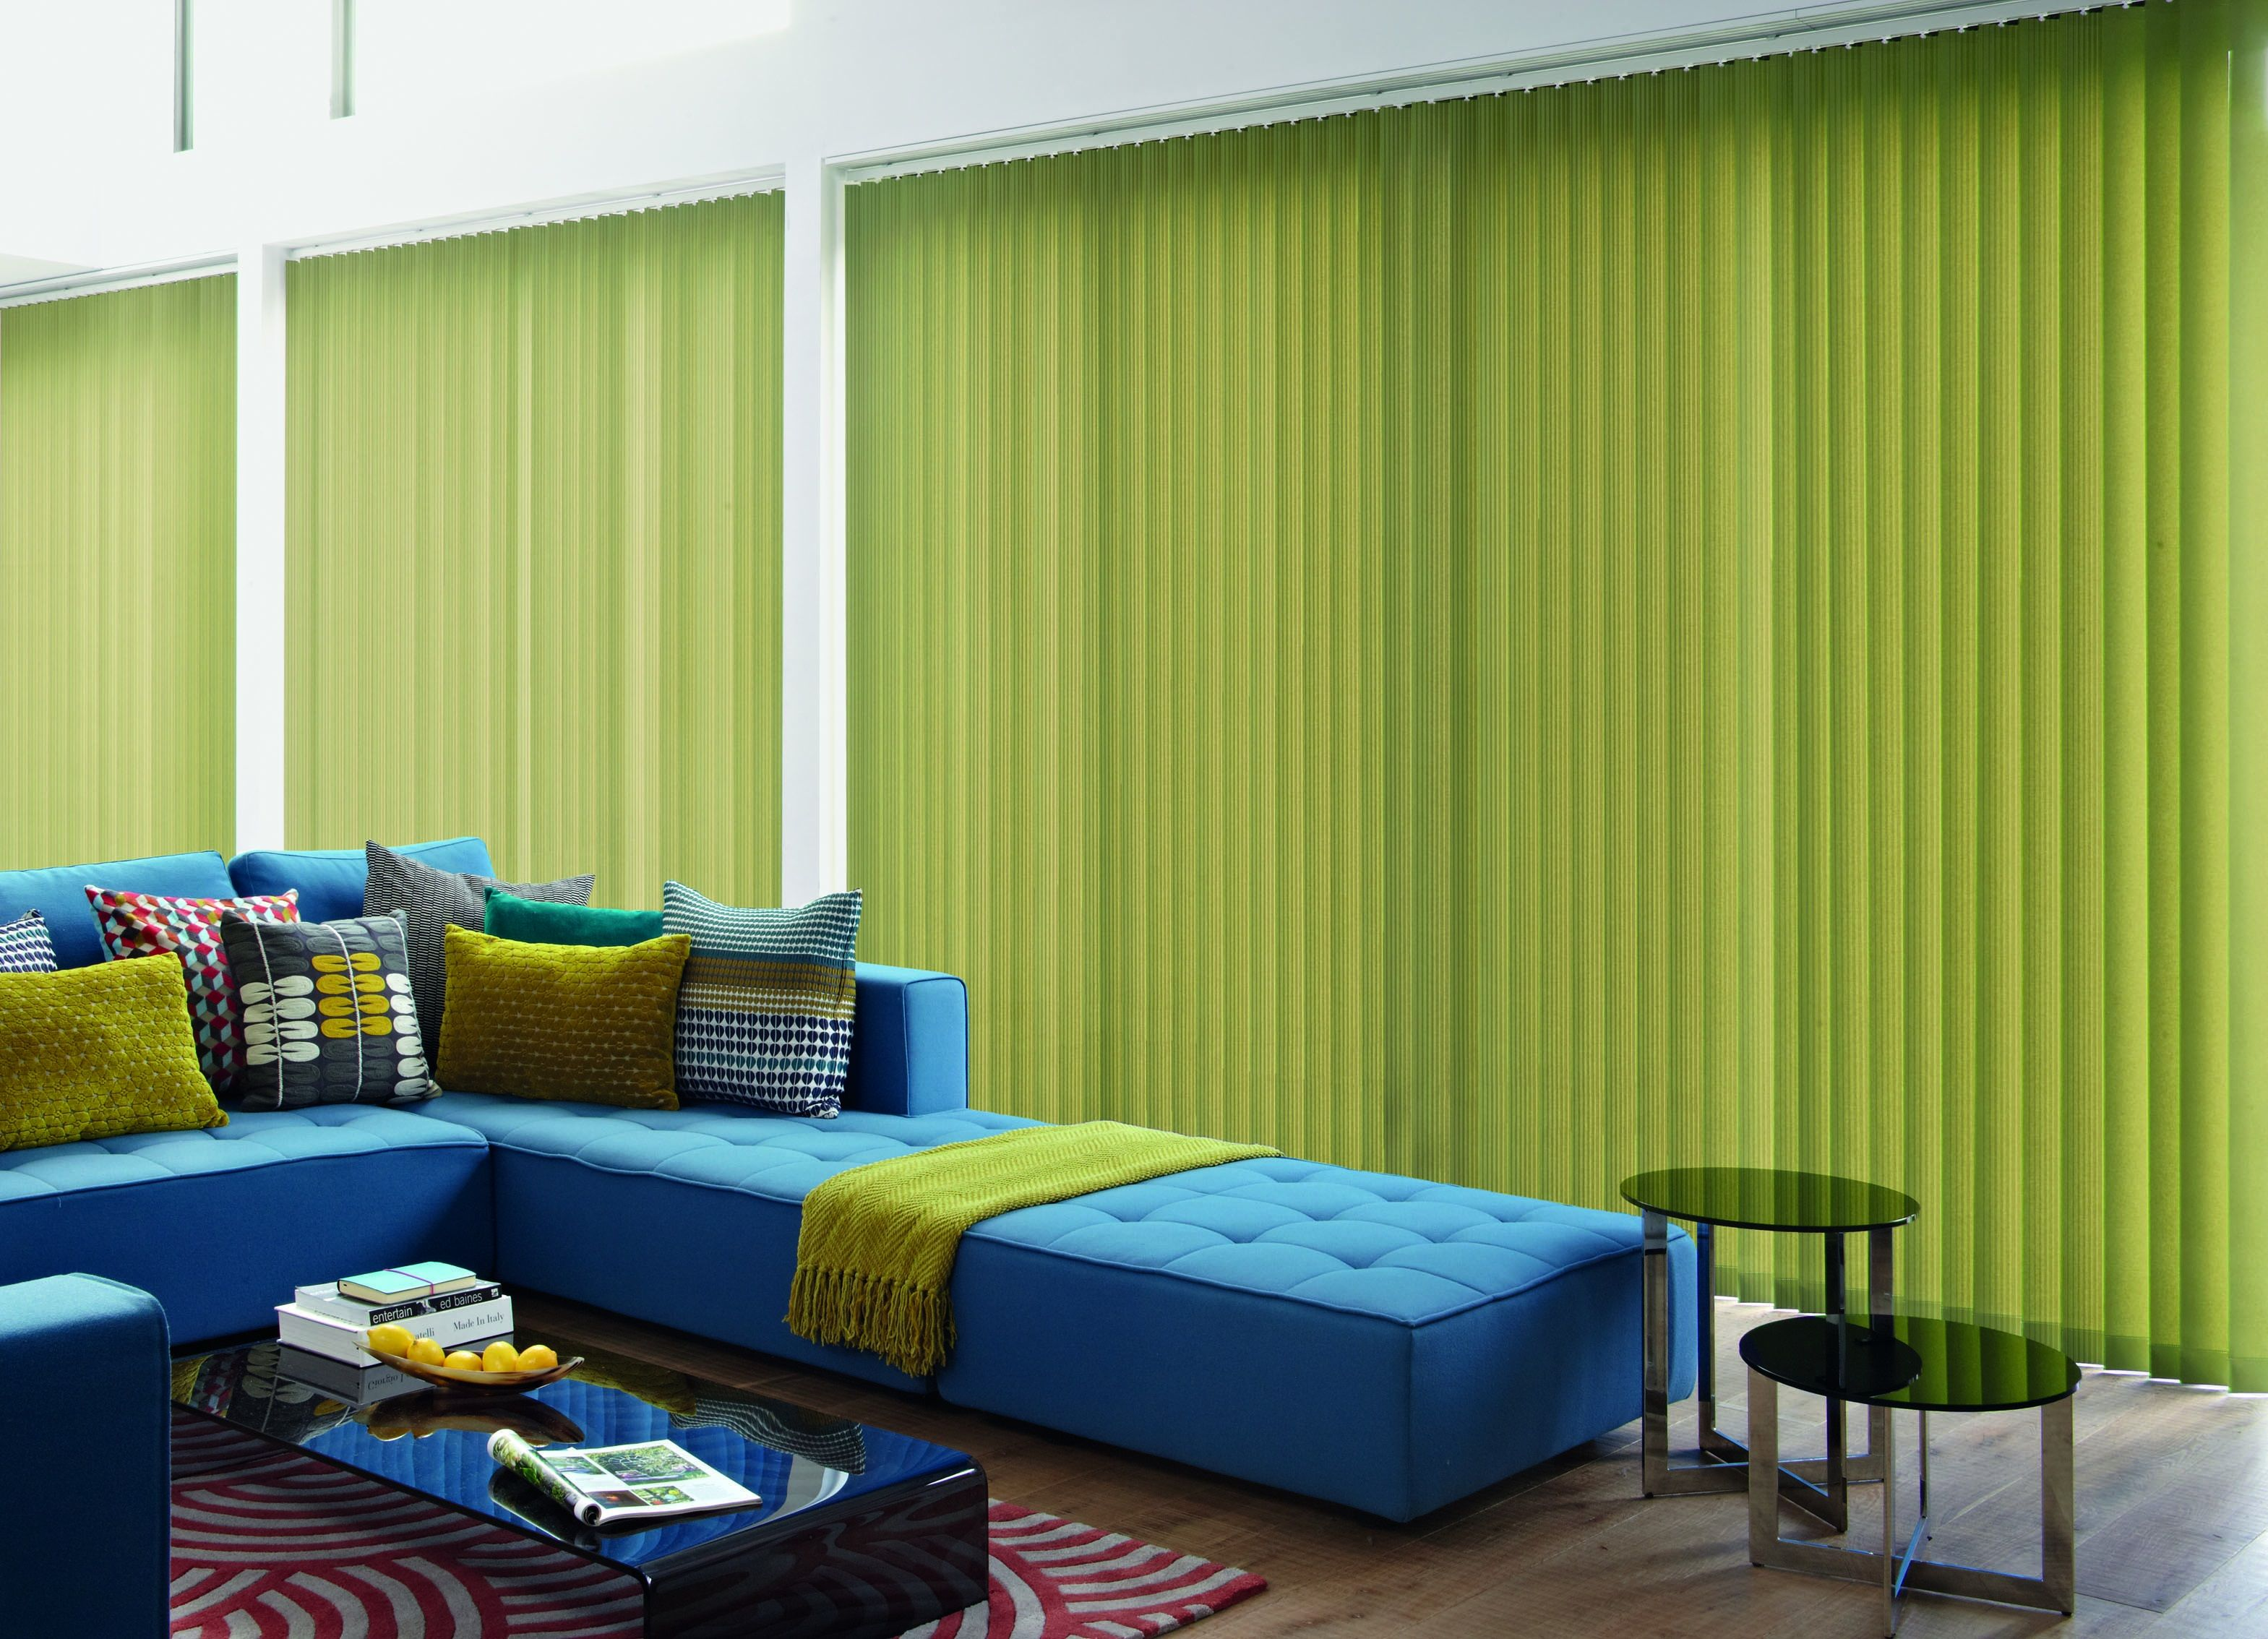 Vertical Blinds Colorful Blinds Fun Decor Idea Low Cost Redecorating Living Room Blinds Vertical Blinds Cheap Blinds